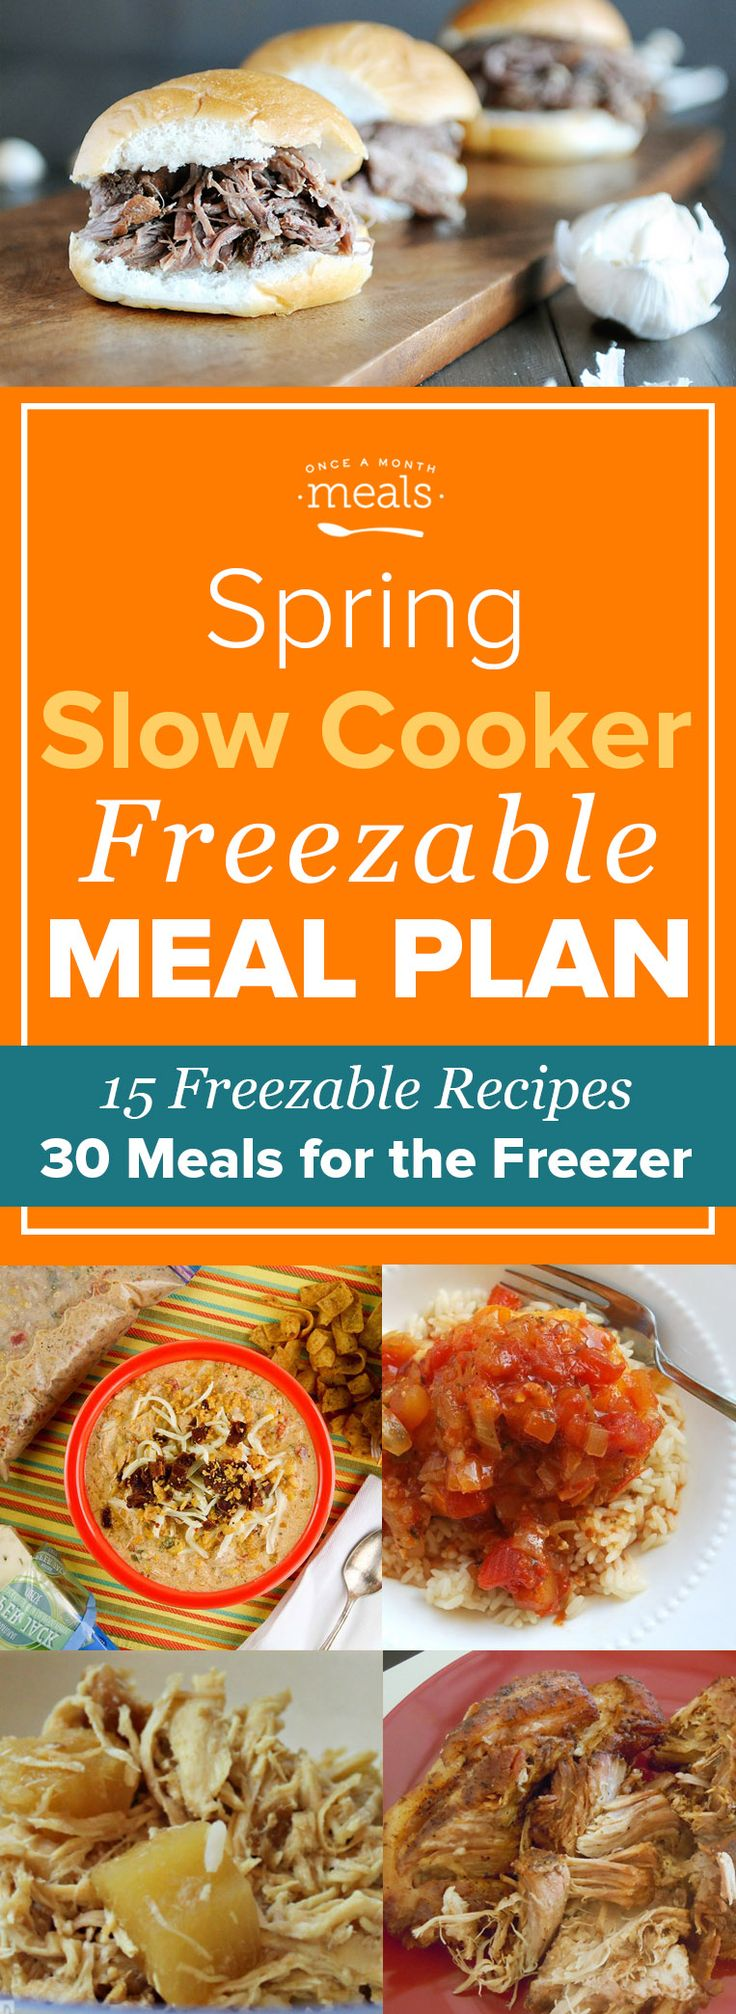 This Spring Slow Cooker Freezer Menu makes freezer cooking a breeze! From Jalapeño Corn Pudding to Orange Apricot Pork Chops these easy assembly meals will have you prepared to feed your family a stress-free home cooked dinner every night this month.